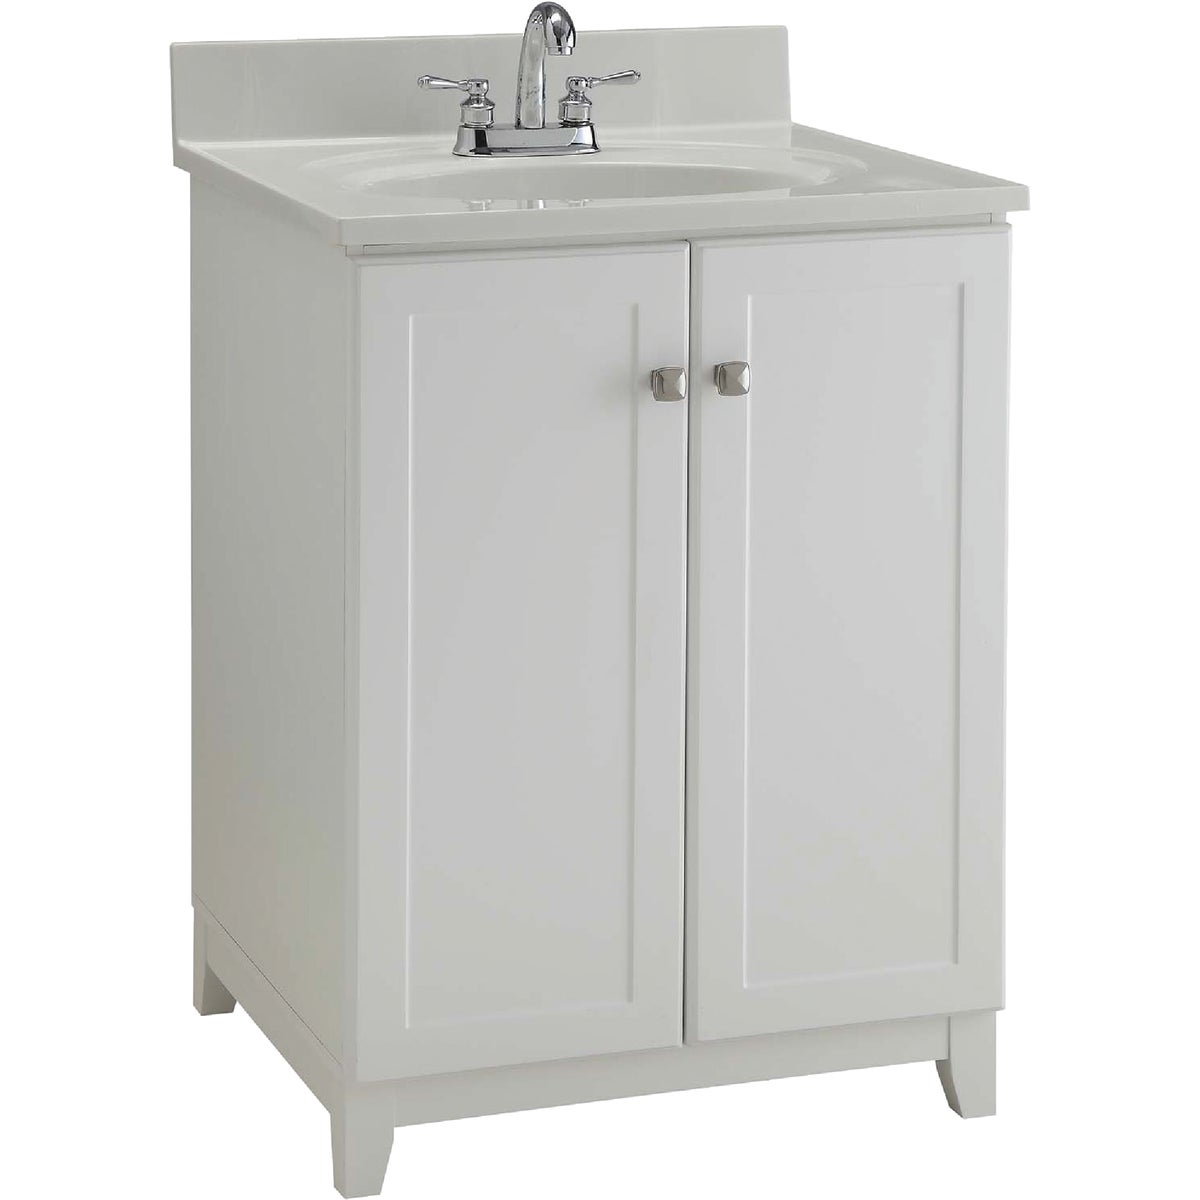 24X21 WHITE VANITY - 545053 by Design House  Dhi